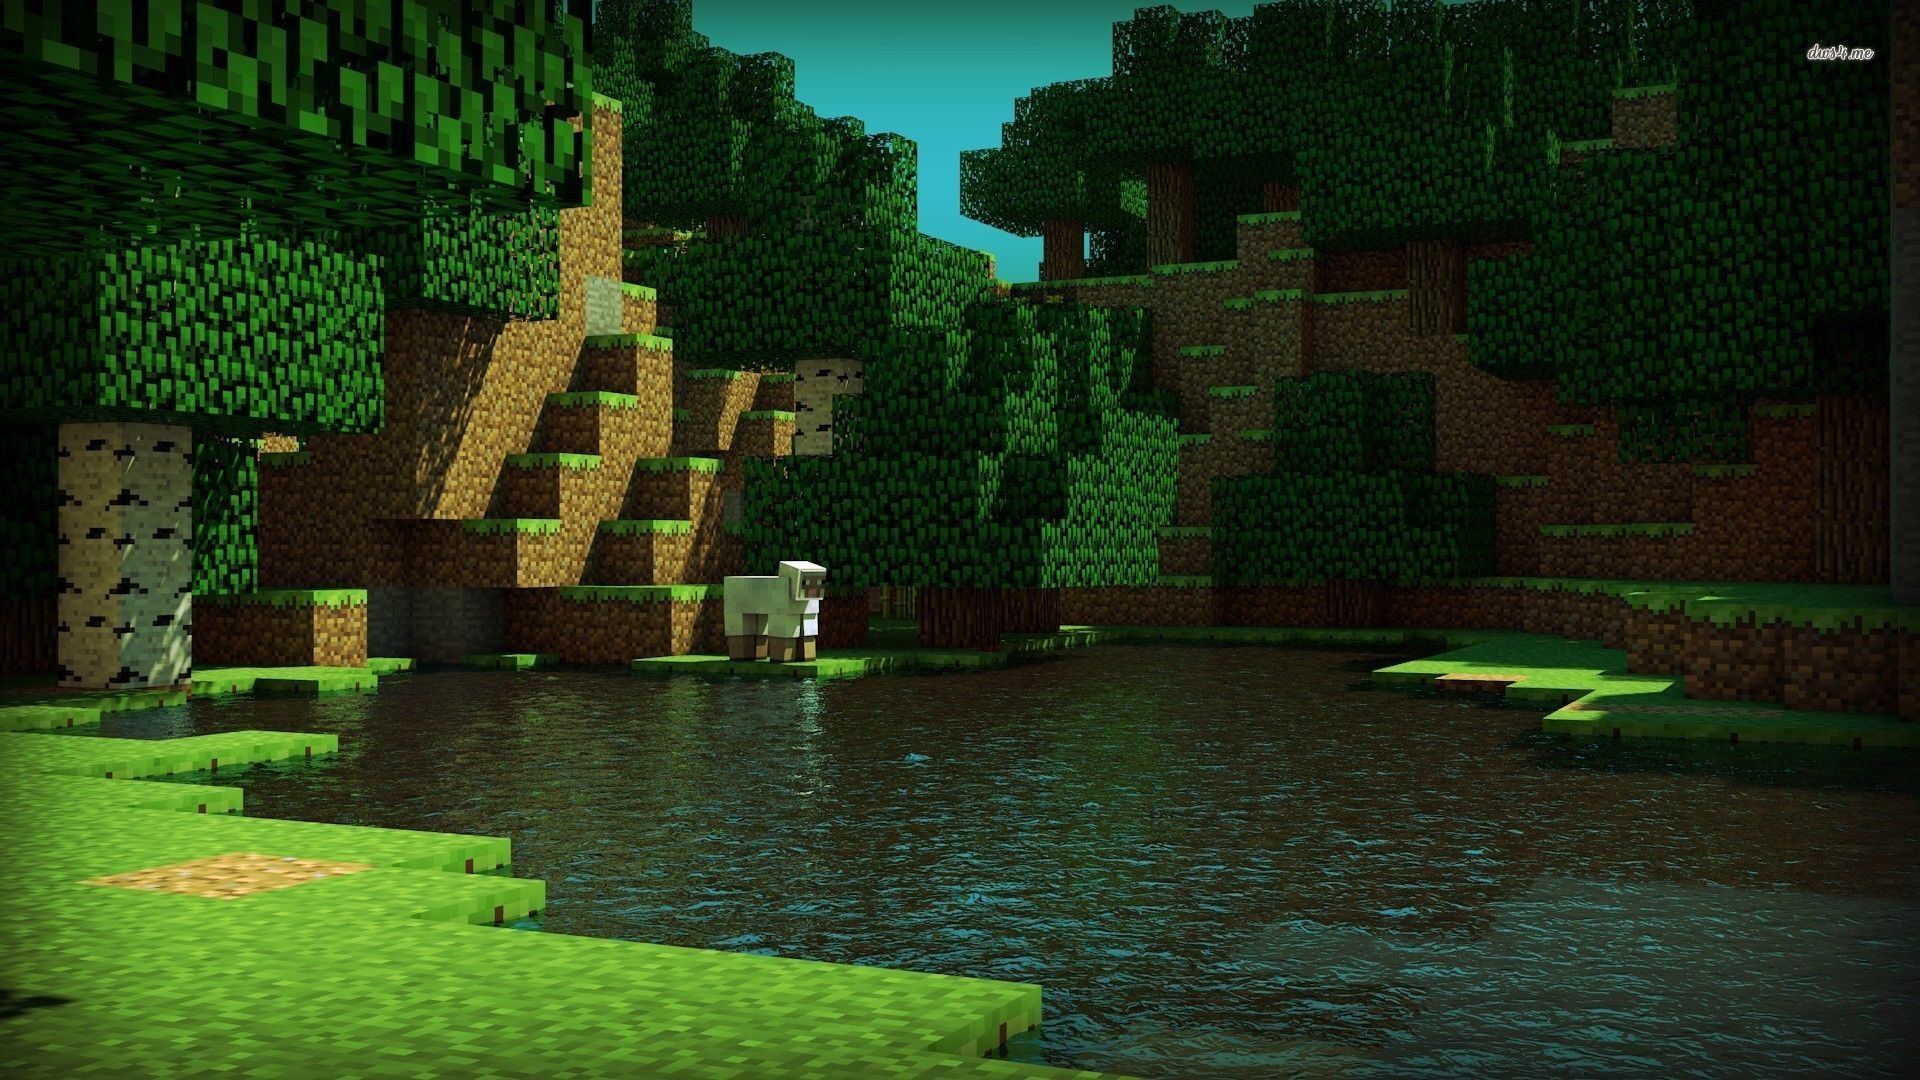 Minecraft Wallpapers HD x Group   3D Wallpapers   Pinterest     Minecraft Wallpapers HD x Group